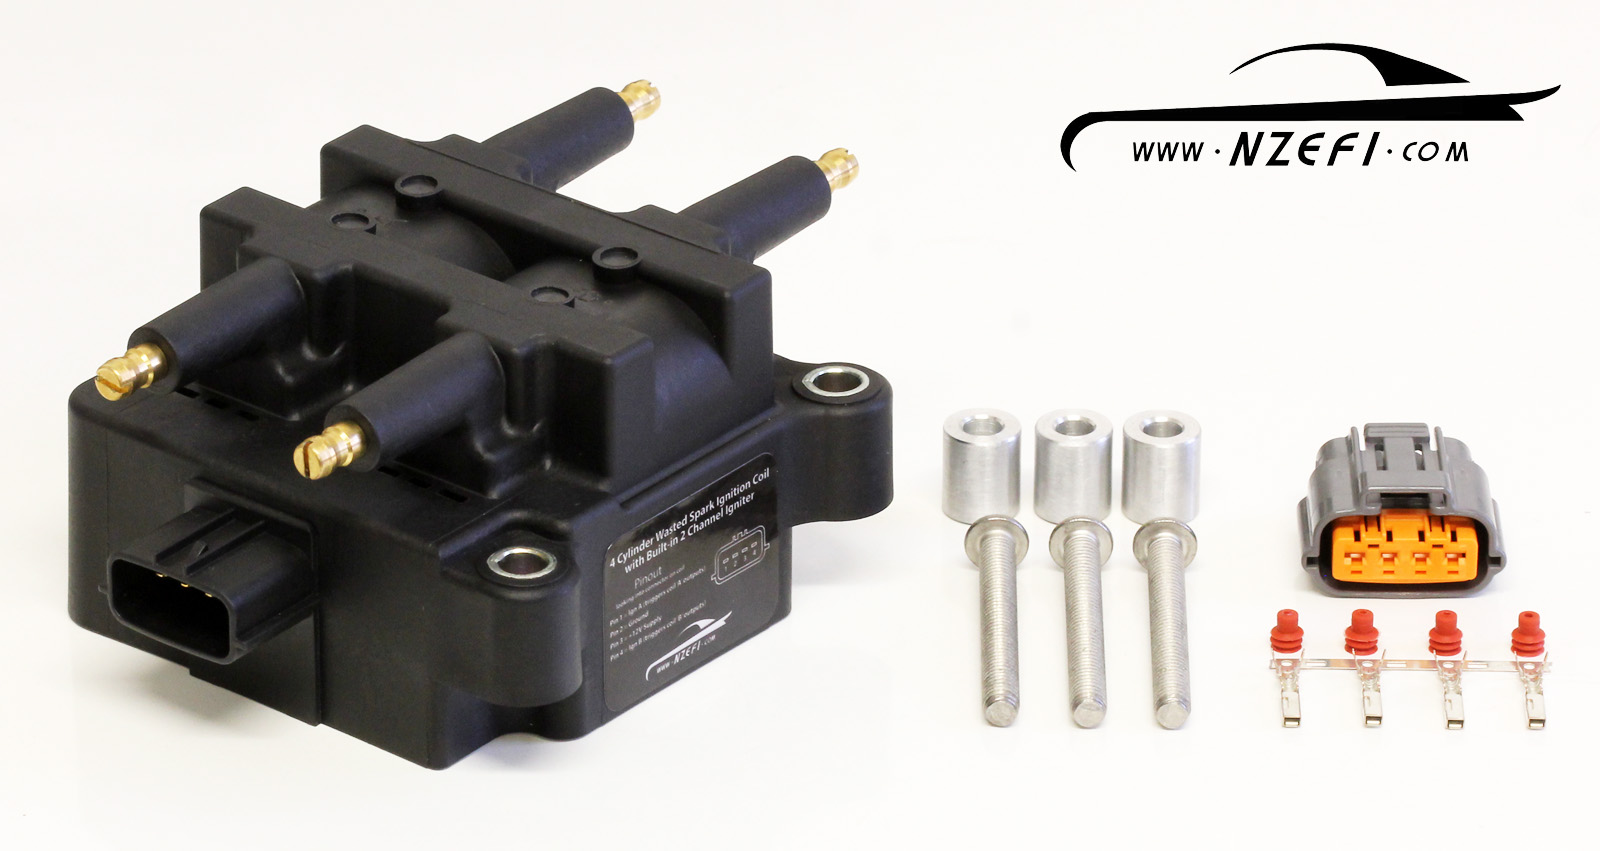 4 Cylinder Wasted Spark Ignition Coil With Built In Igniter